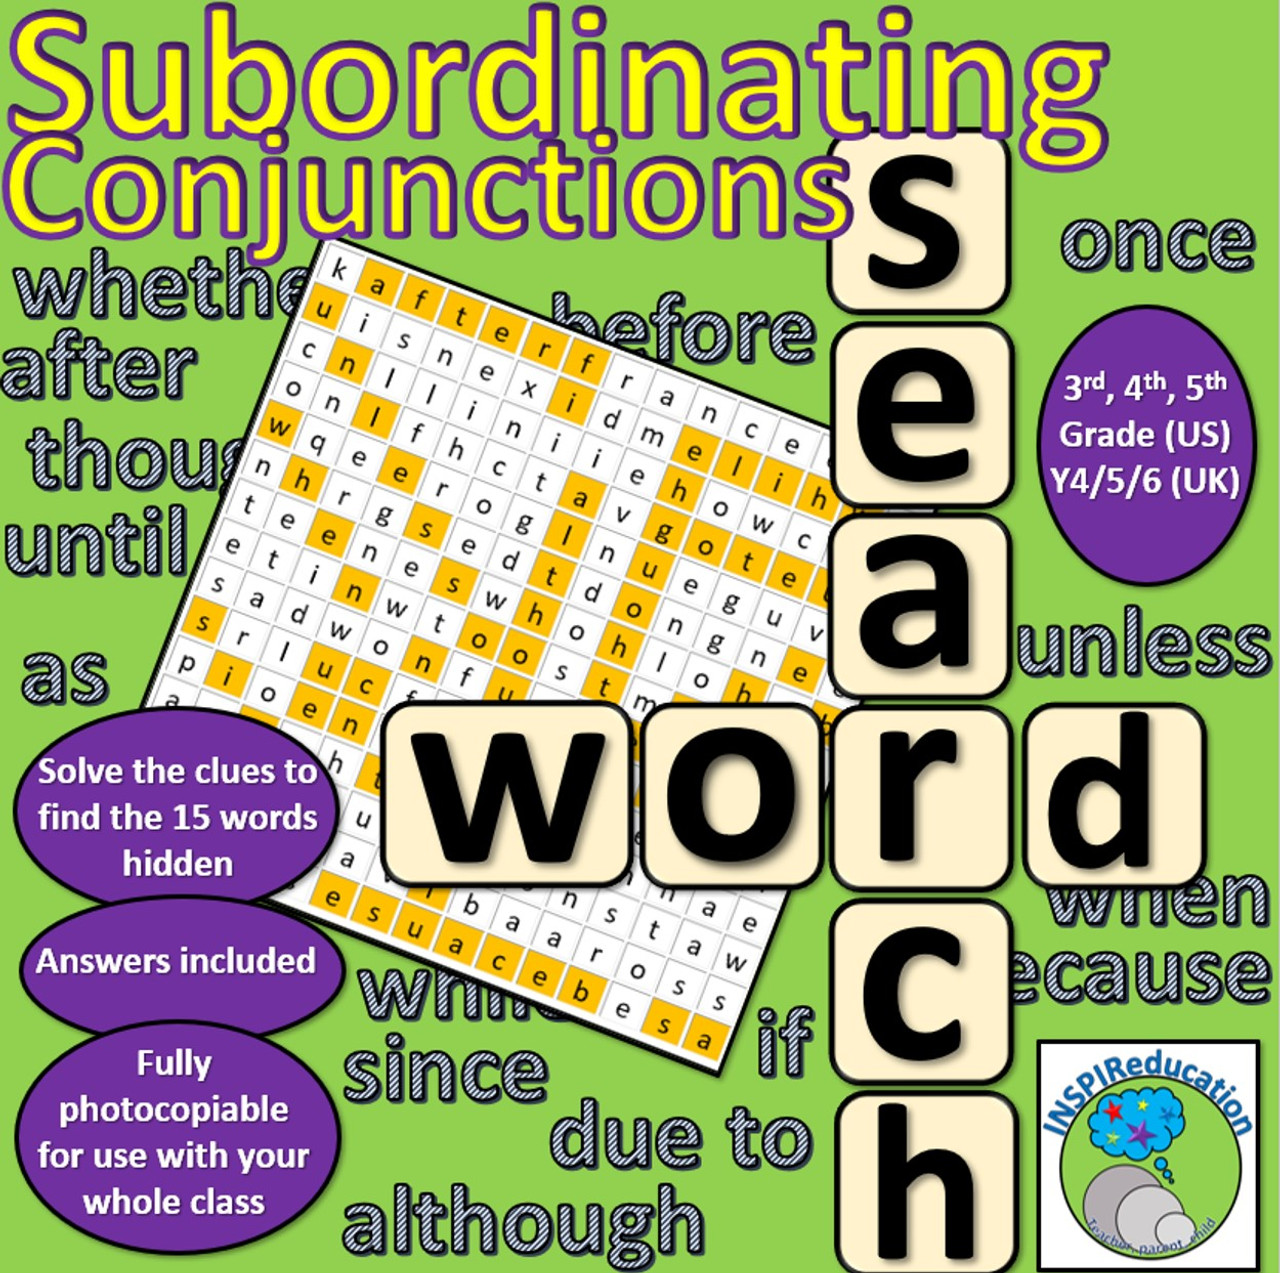 small resolution of Subordinating Conjunctions Wordsearch (Find all 15 conjunctions) - Amped Up  Learning